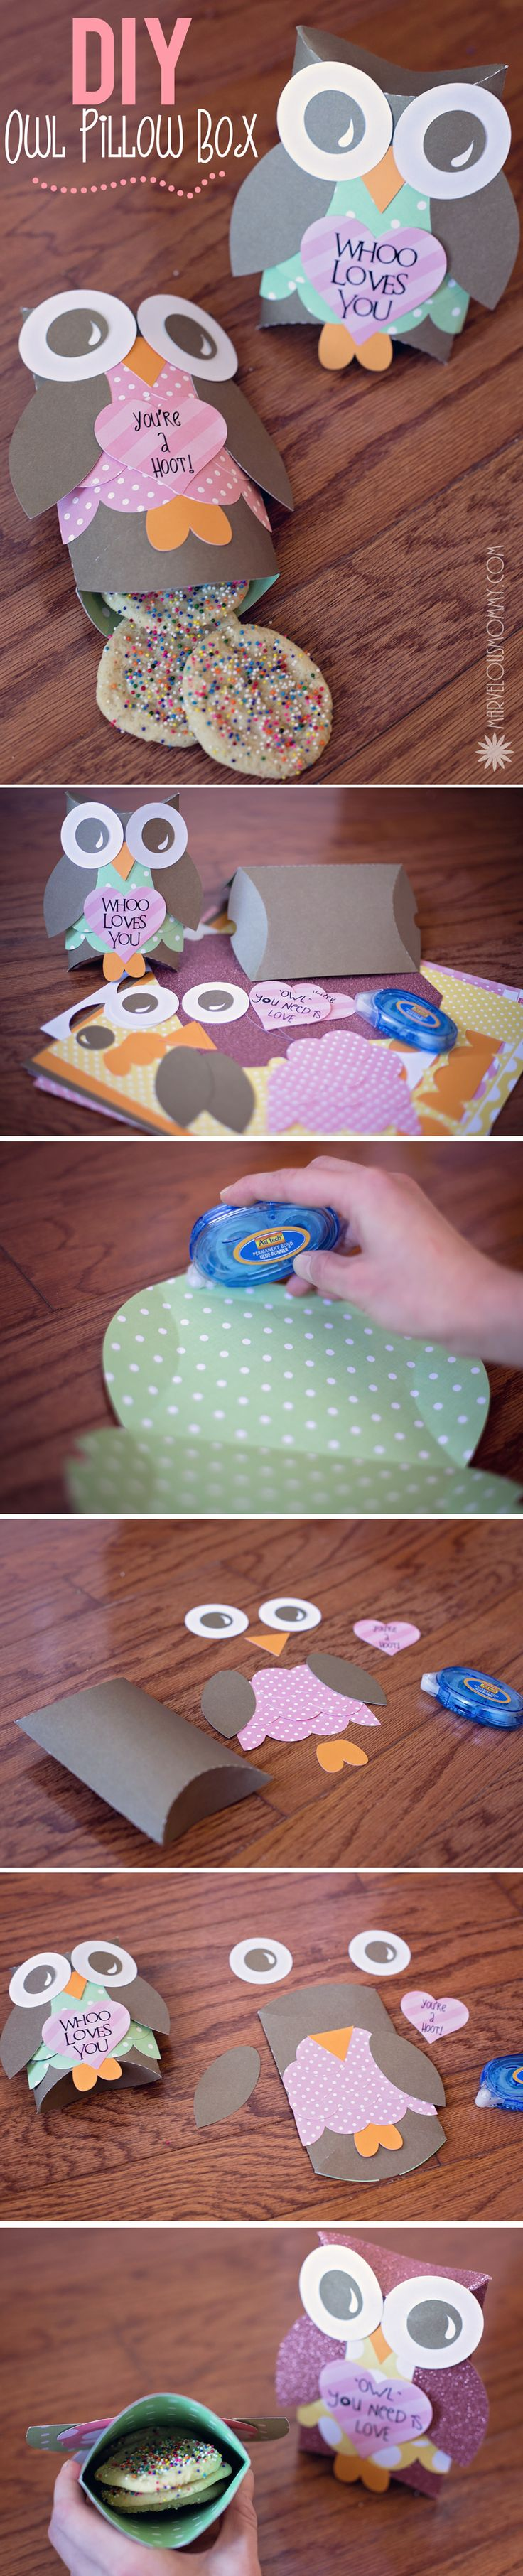 DIY Owl Pillow Boxes: